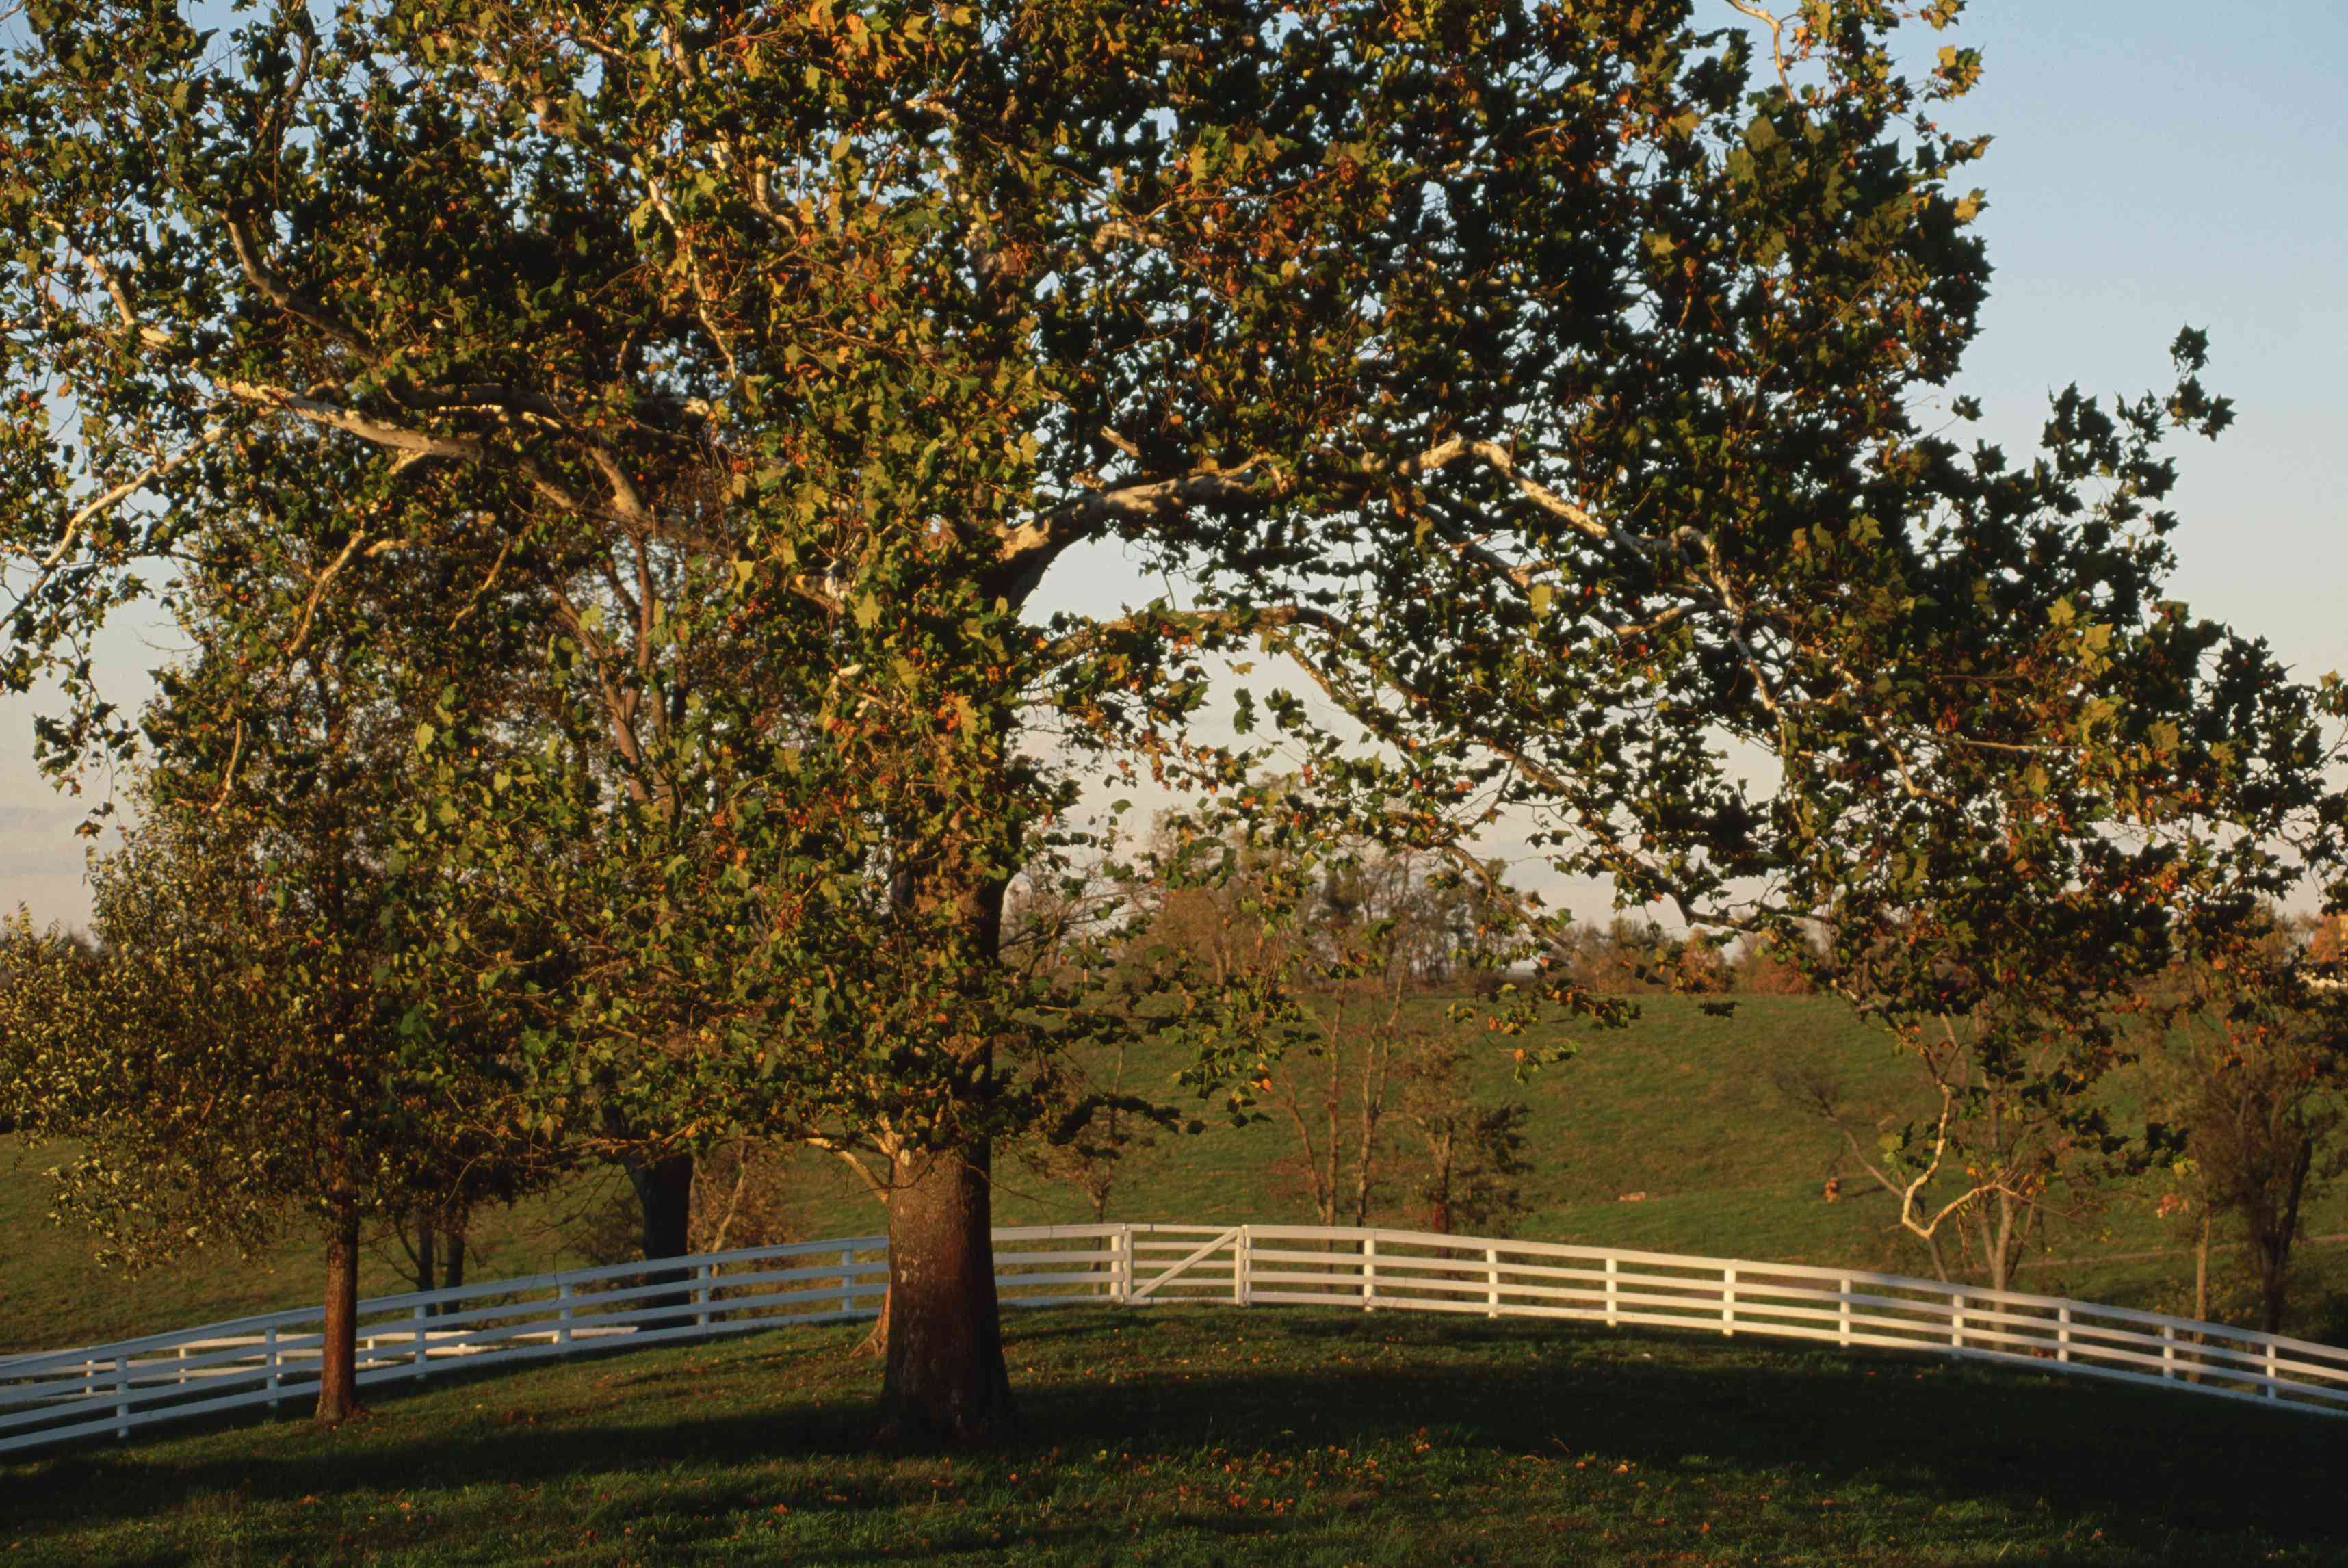 sycamore tree on a large green field with a white picket fence behind the tree